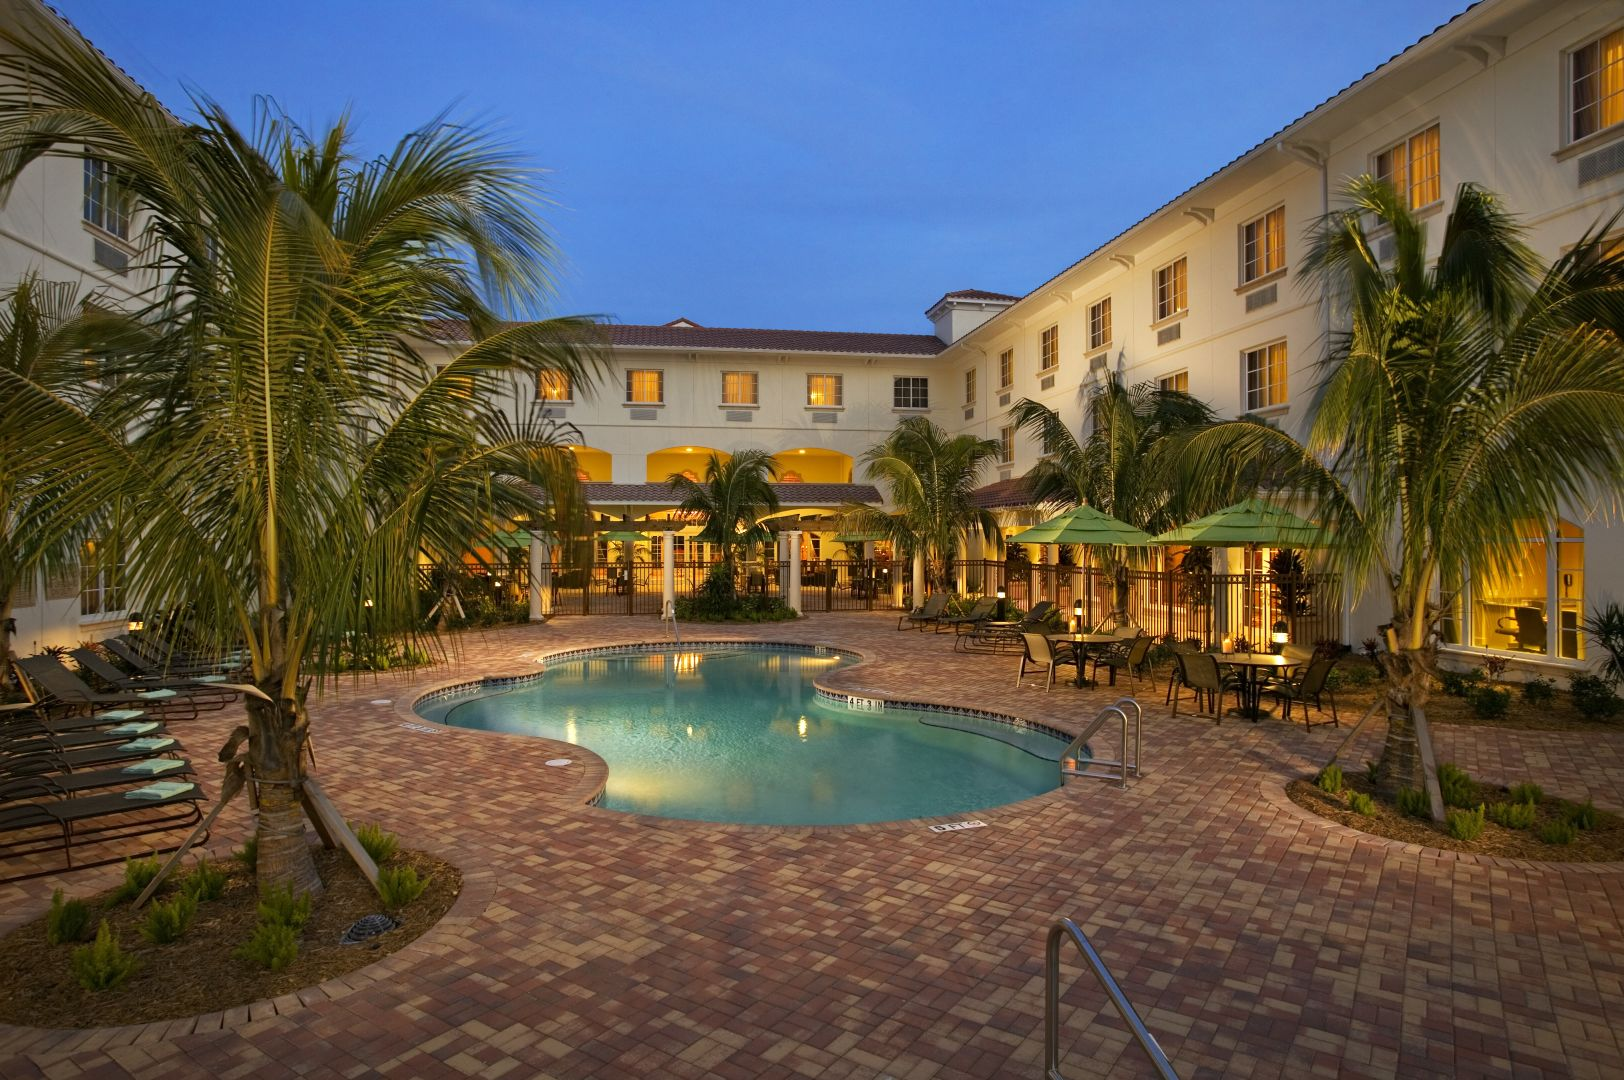 Hilton Garden Inn Port St. Lucie, FL | Official Hotel Site